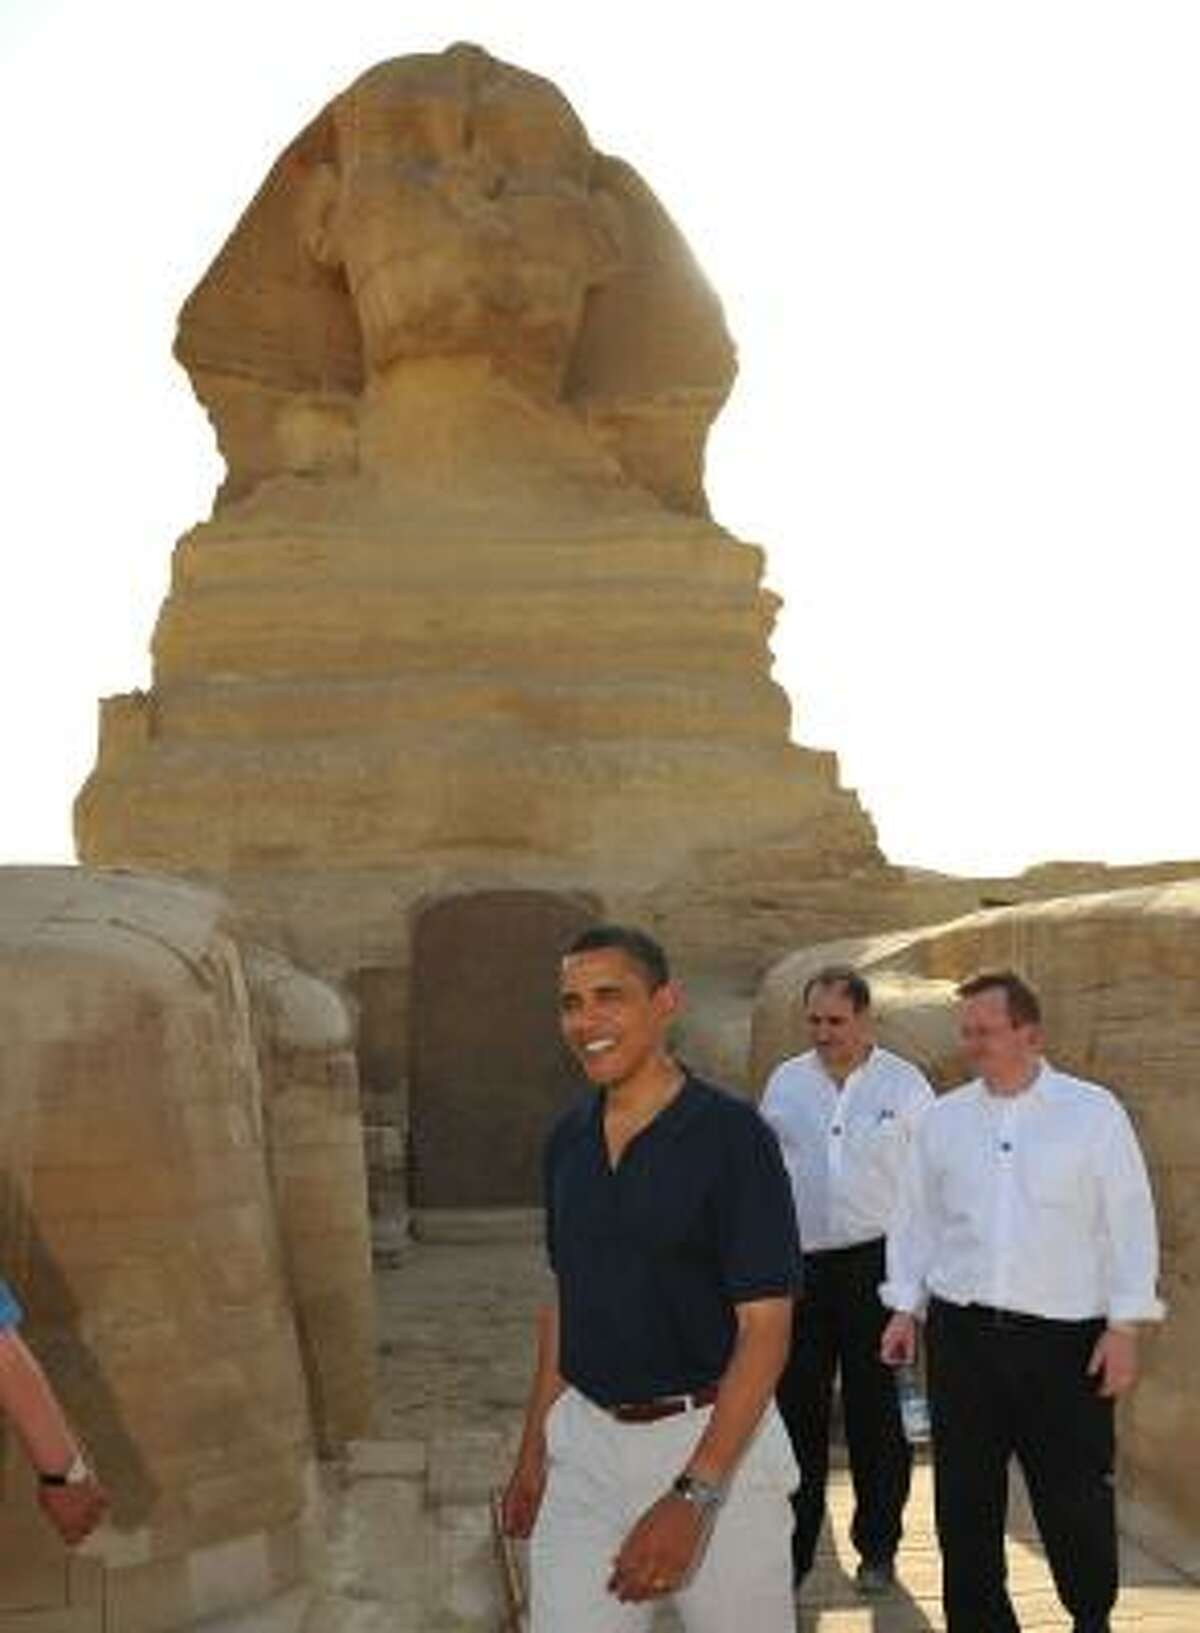 President Barack Obama walks with Press Secretary Robert Gibbs and senior advisor David Axelrod in front of the Sphinx during a tour of the Great Pyramids of Giza in Egypt on June 4.